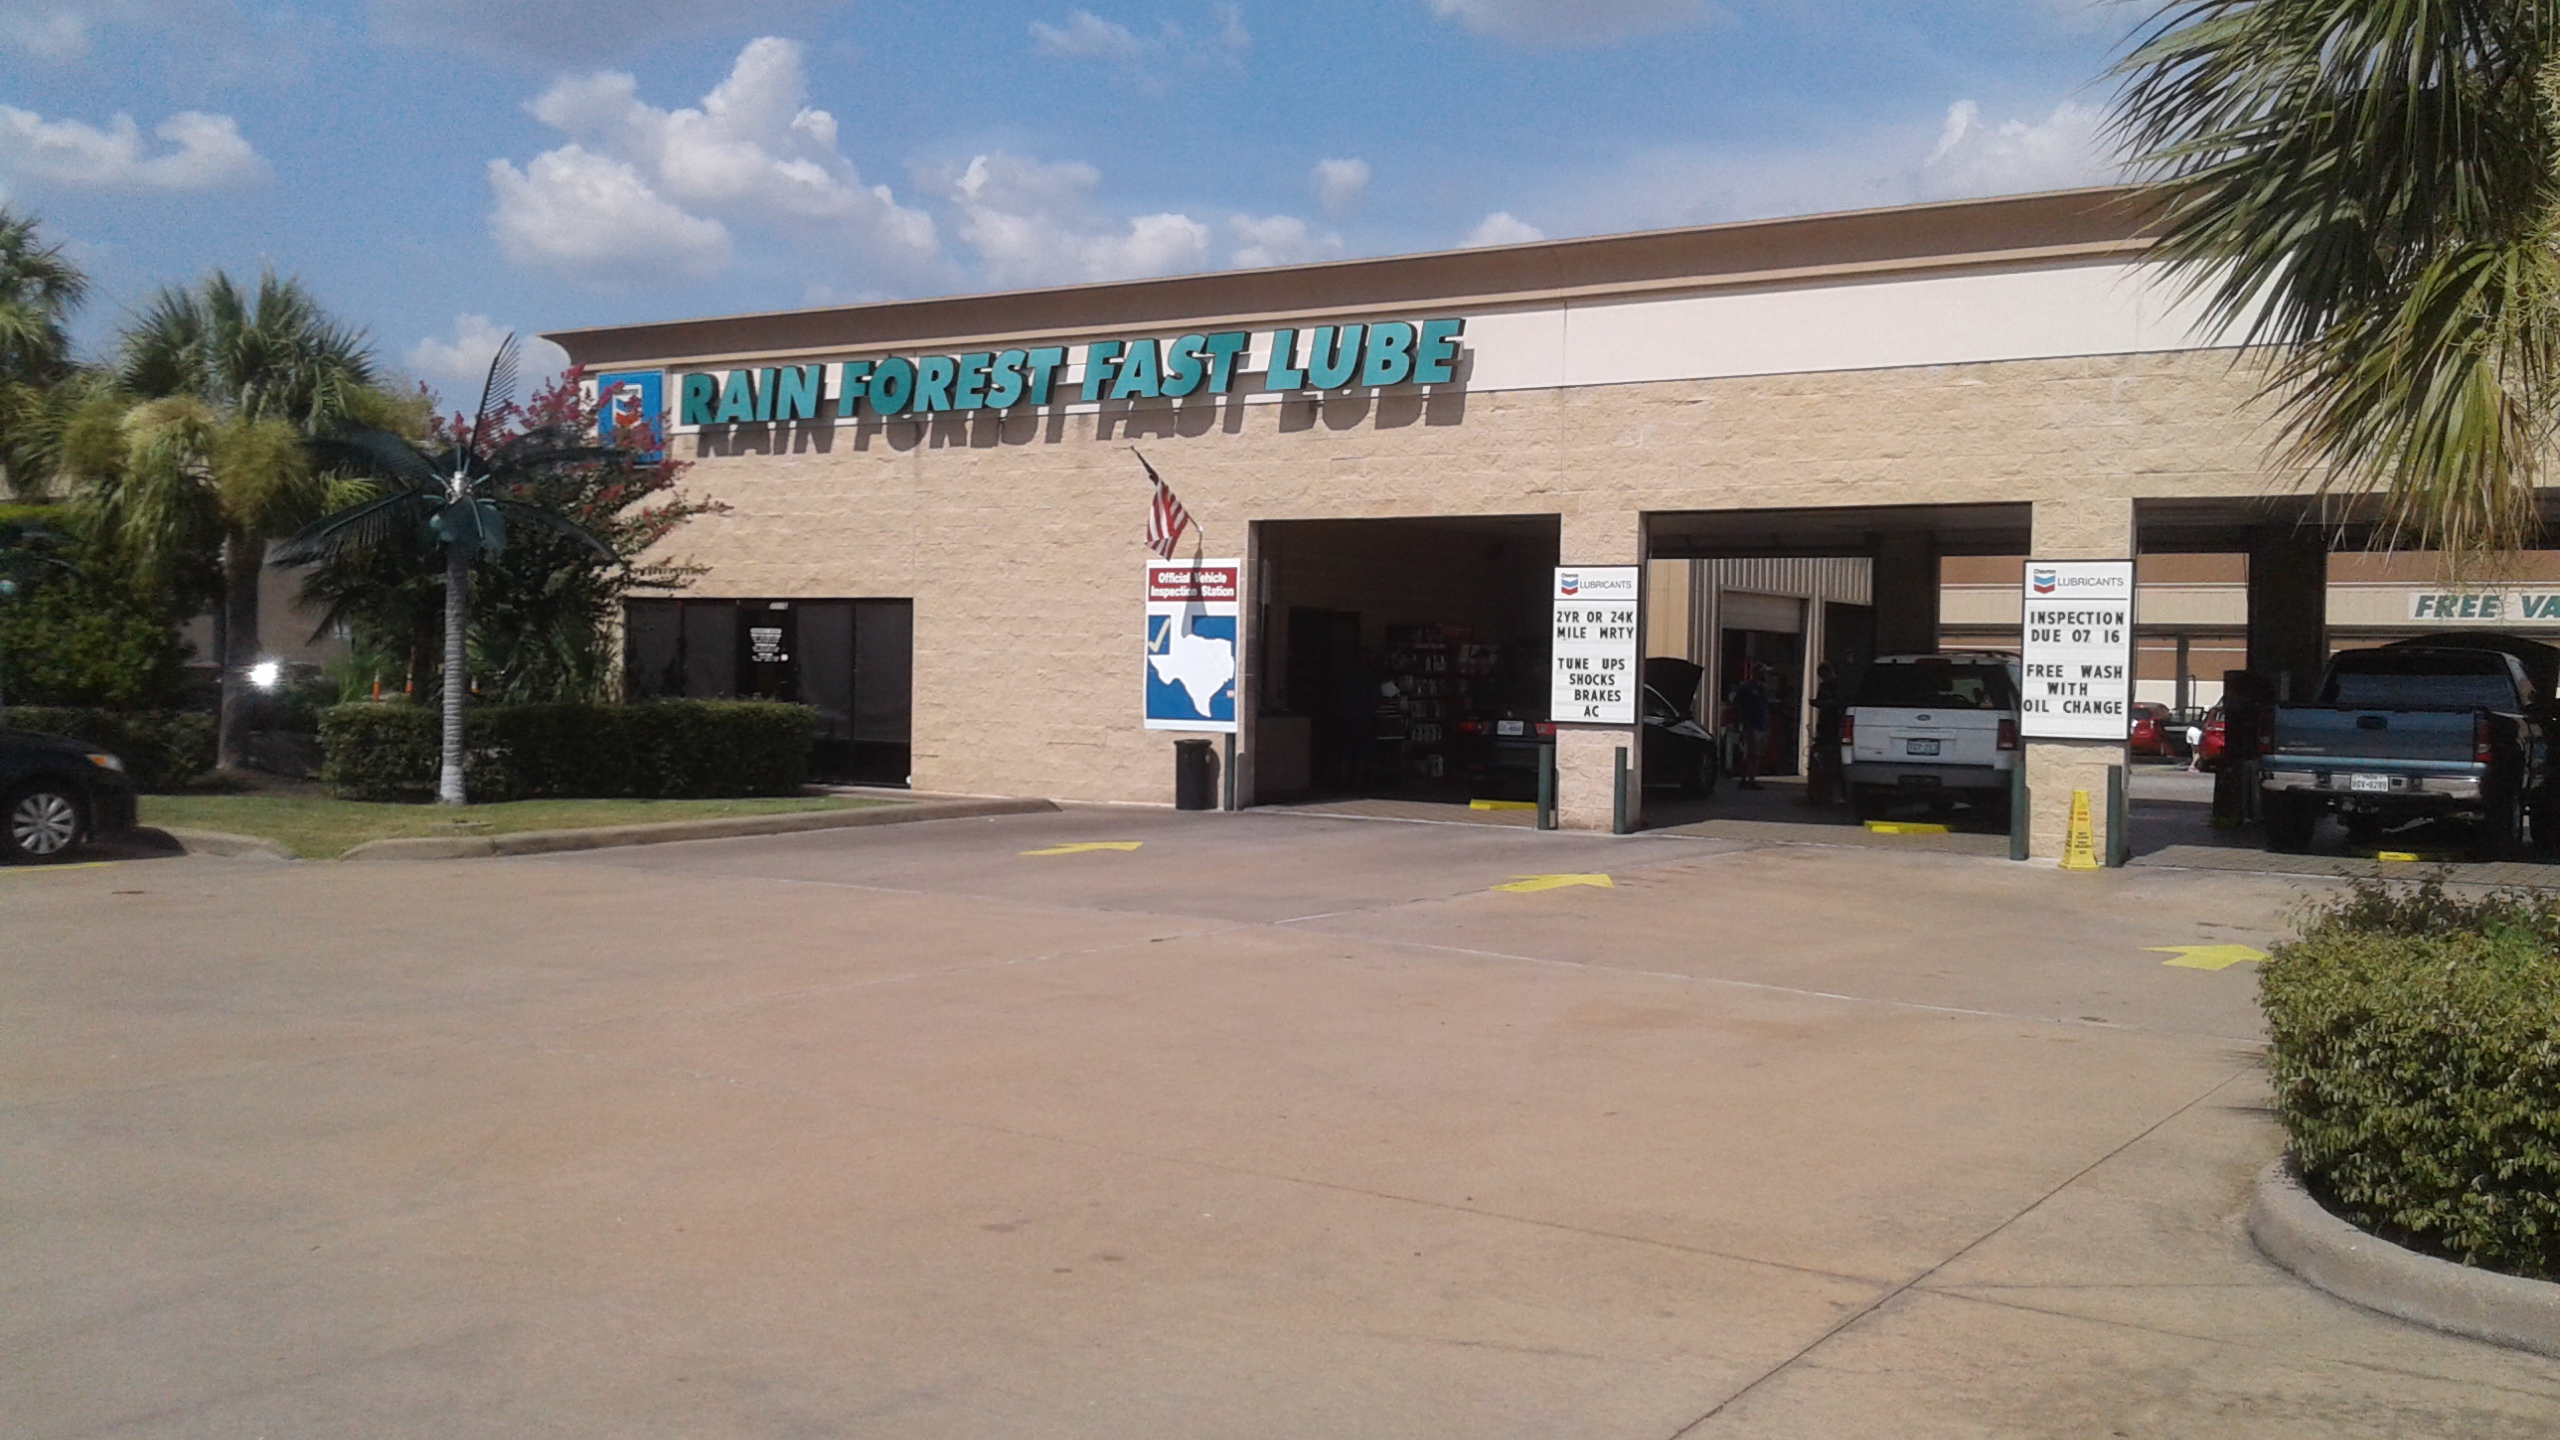 Car Wash Near Me Coupons: Rain Forest Wash & Lube Coupons Near Me In Cypress